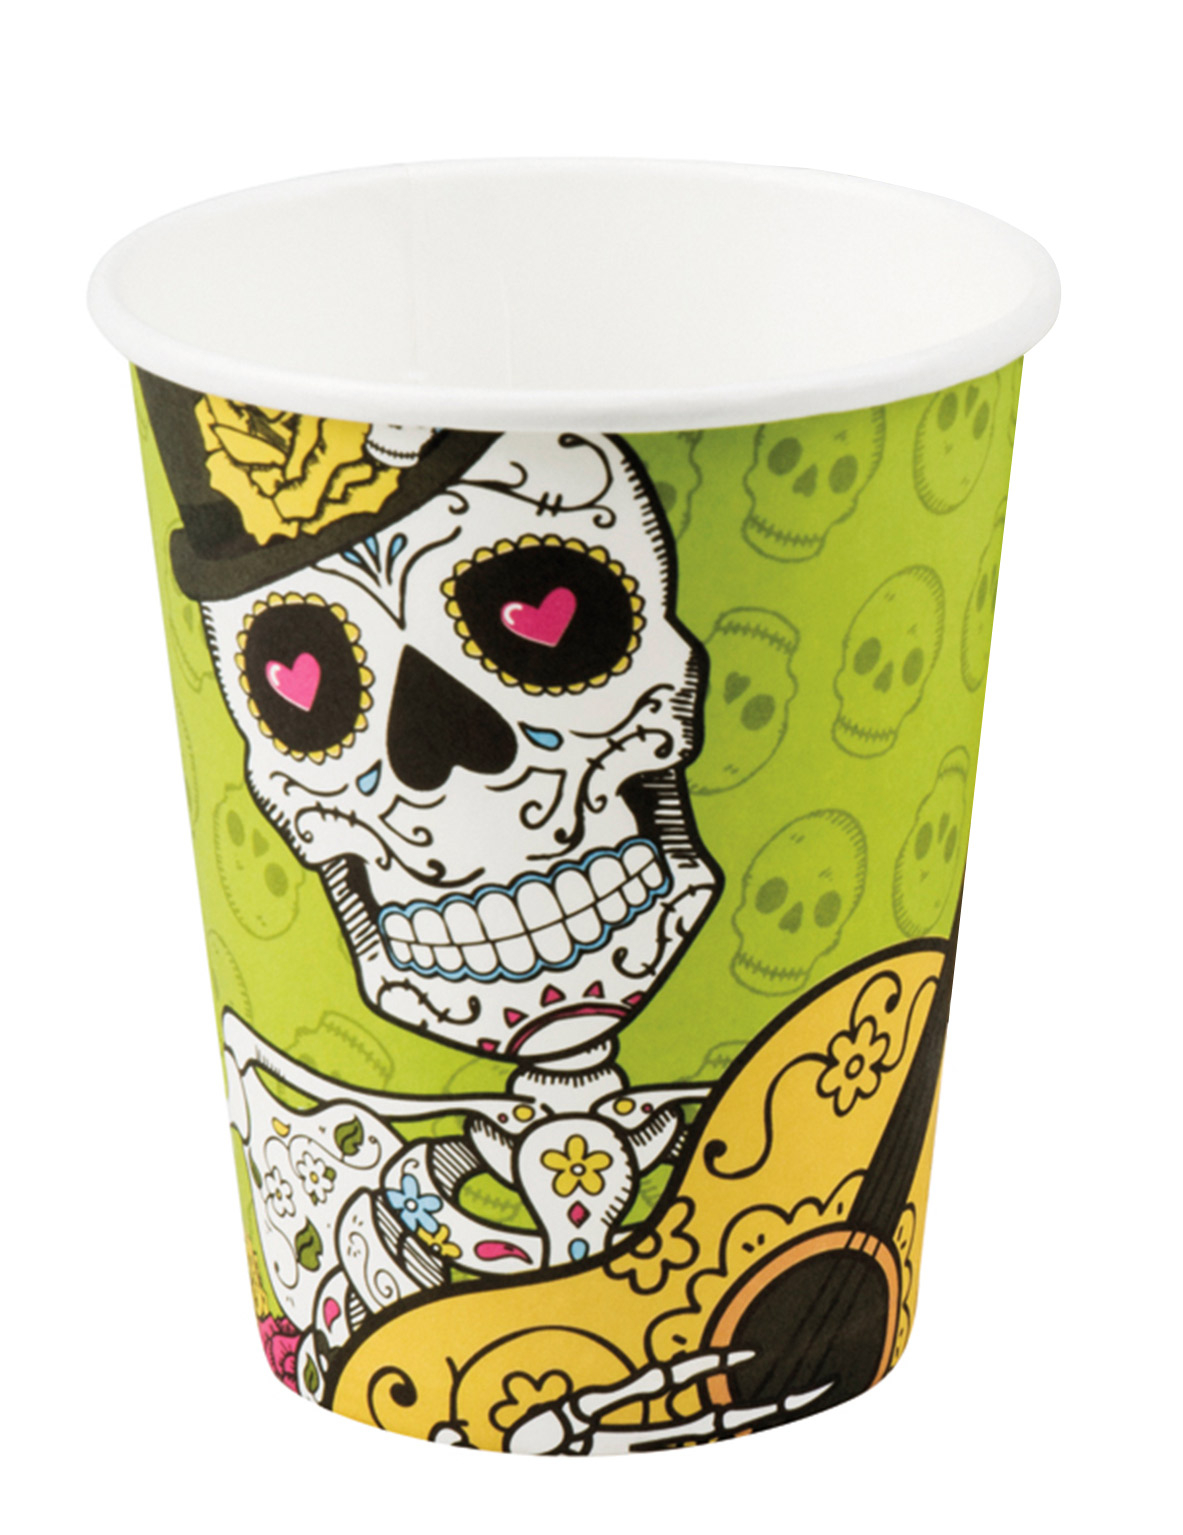 6 becher aus pappe dia de los muertos 250 ml partydeko und g nstige faschingskost me vegaoo. Black Bedroom Furniture Sets. Home Design Ideas